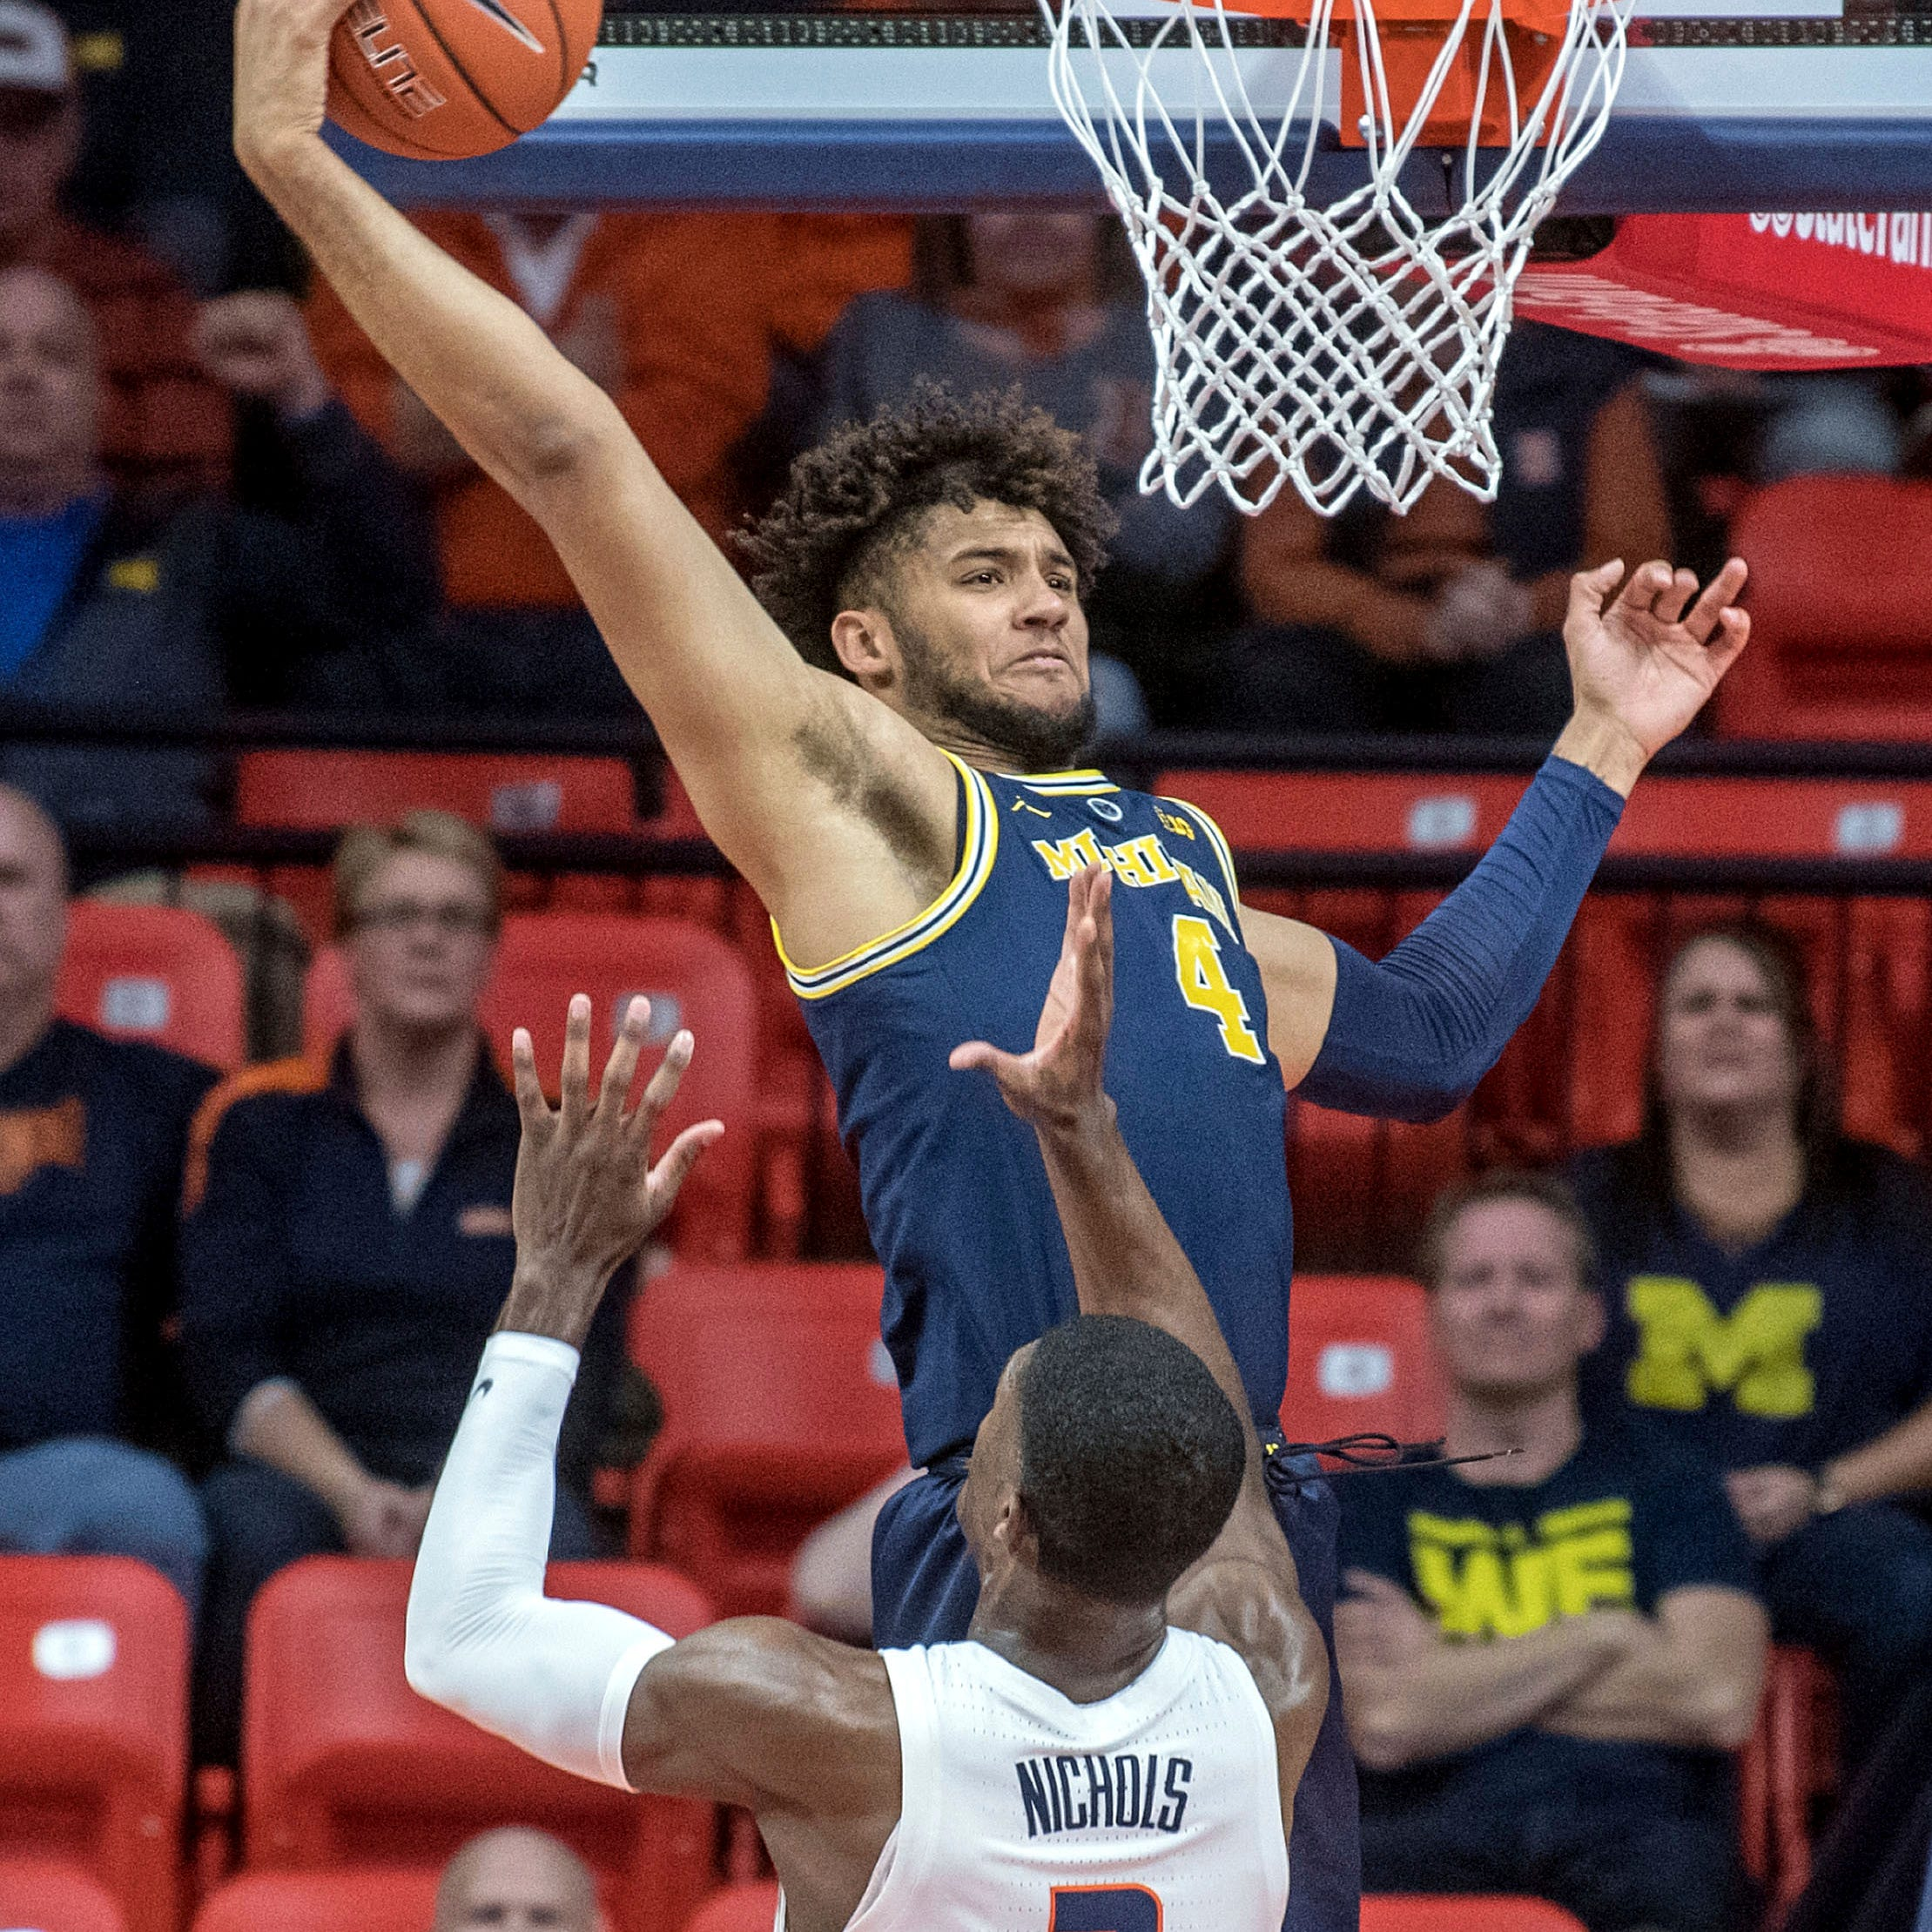 Michigan basketball continues to hum with unbeaten record in sight